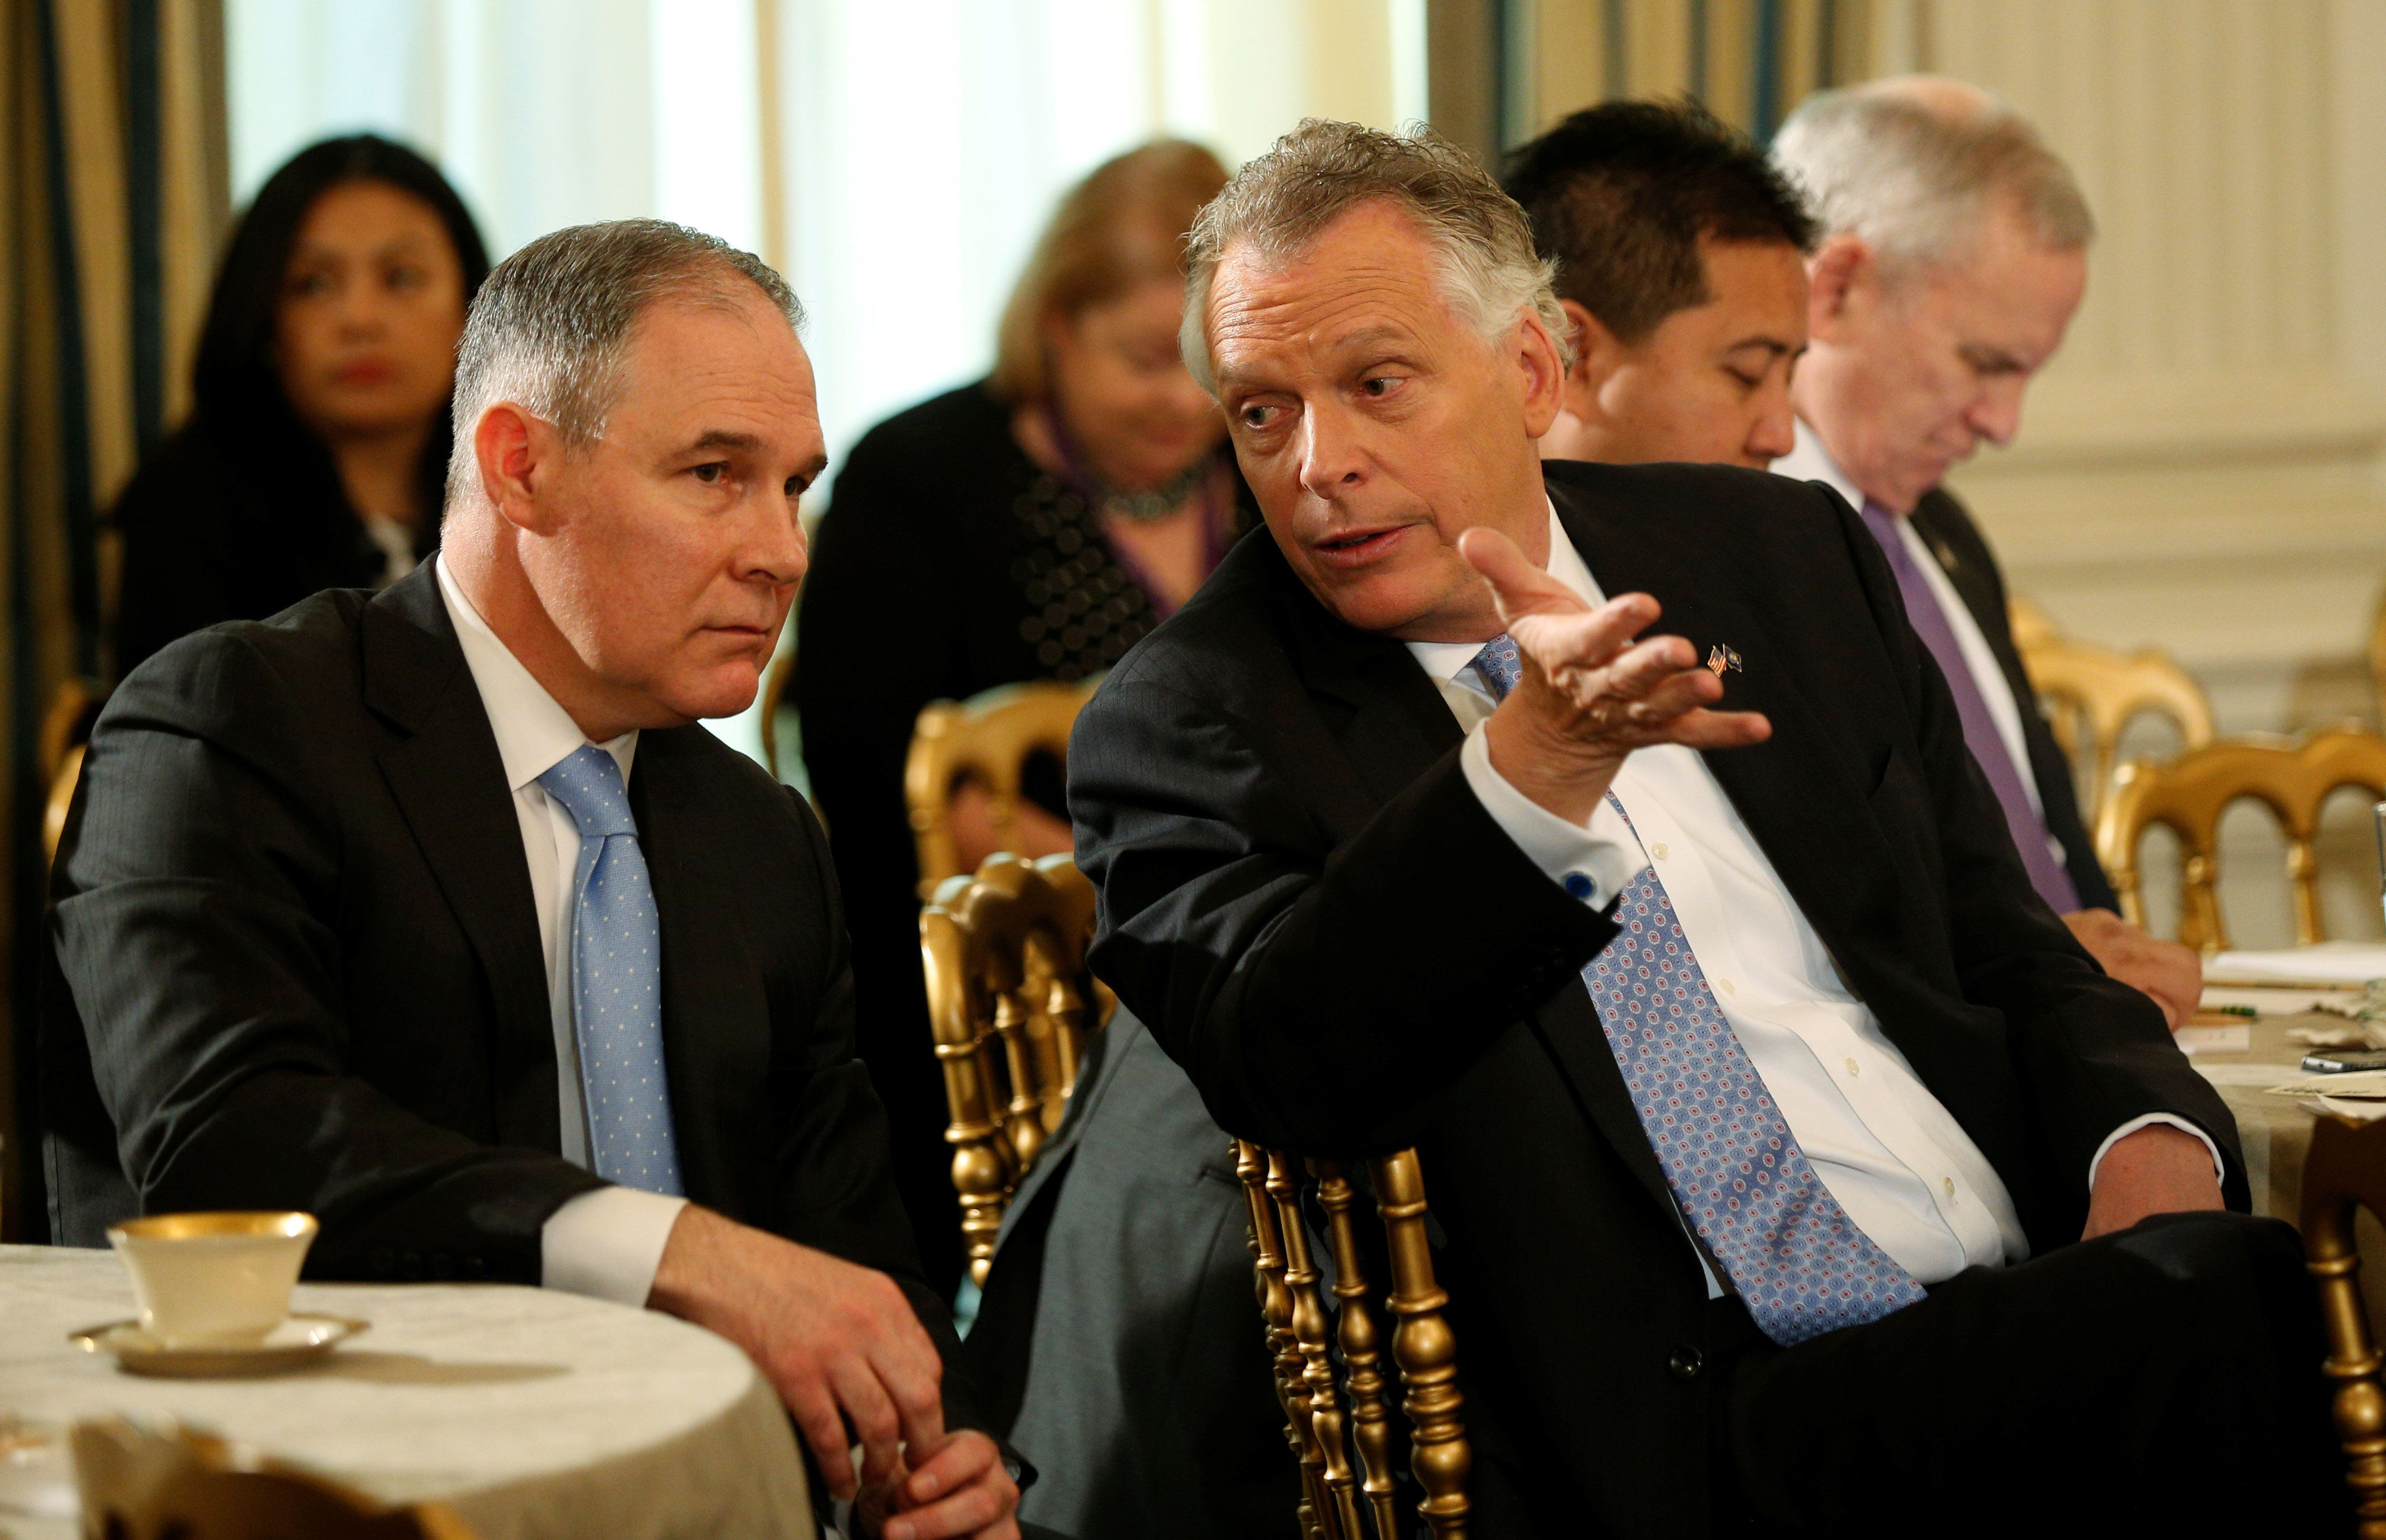 Virginia Governor Terry McAuliffe (R) talks with EPA Administrator Scott Pruitt (L) during the National Governors Association meeting hosted by U.S. President Donald Trump at the White House in Washington, U.S. February 27, 2017.  REUTERS/Kevin Lamarque